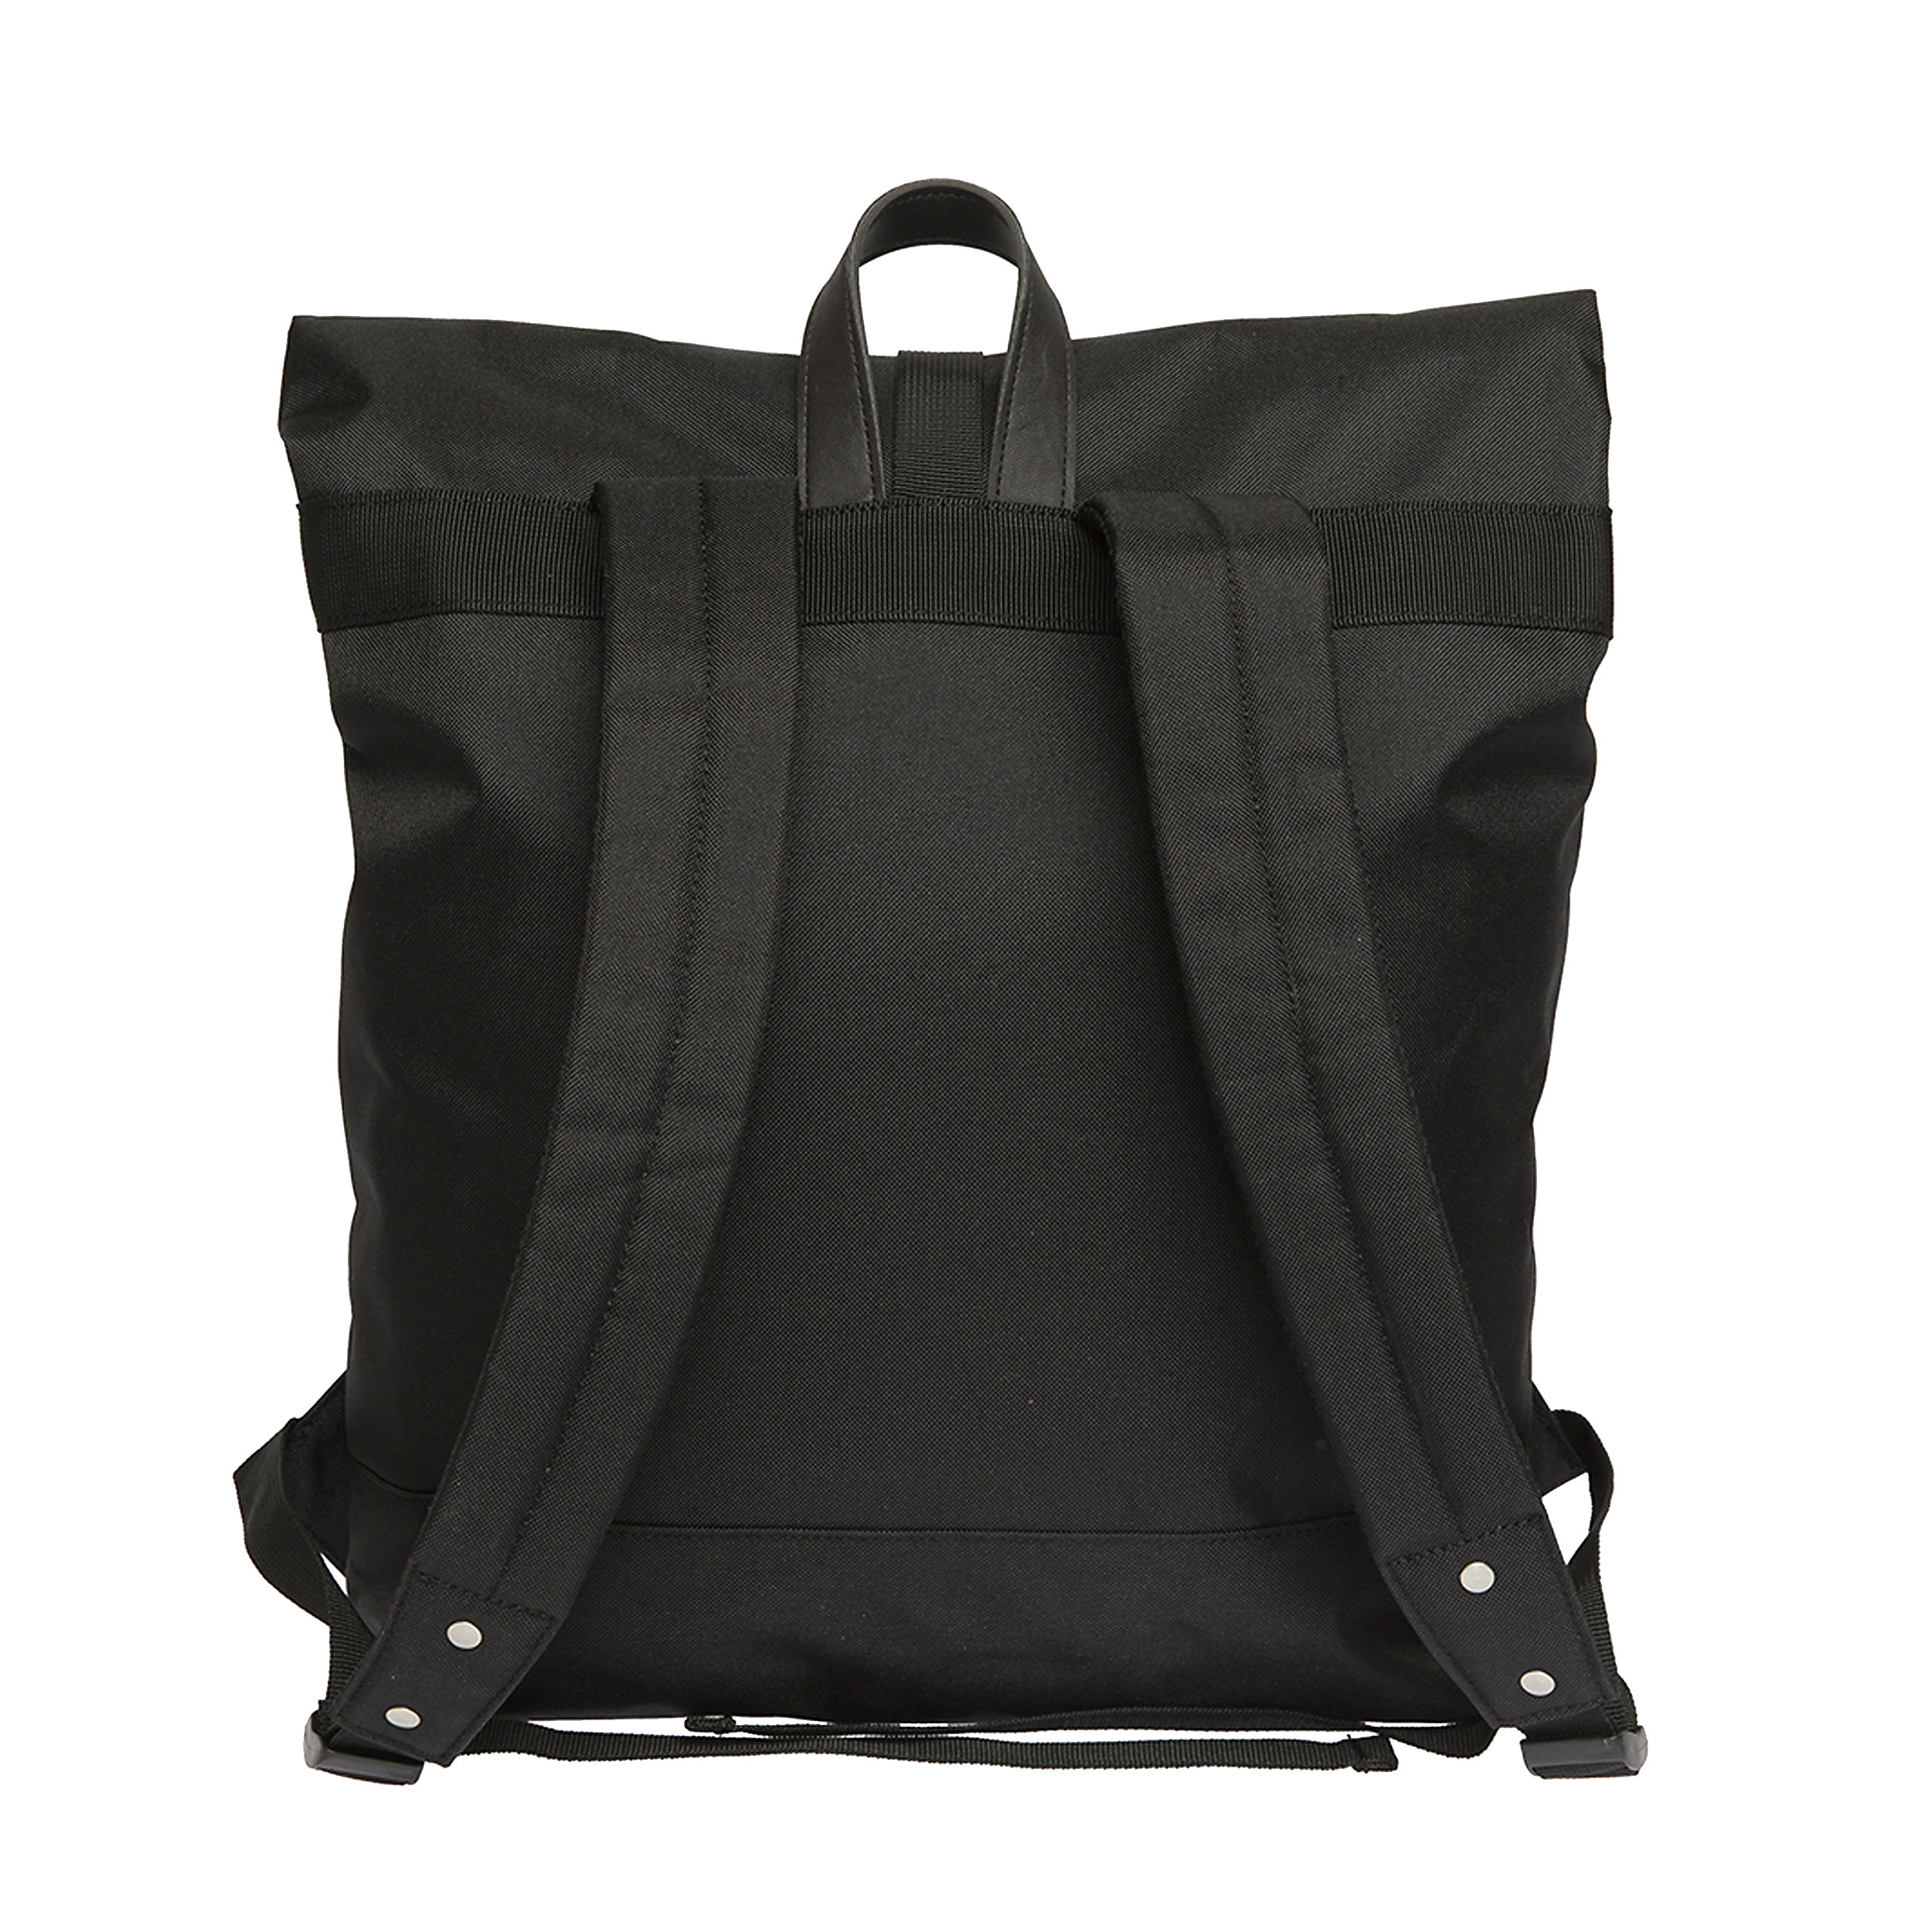 Rucksack LS Roll Top Backpack Recycled Lifestyle Collection 24 Liter